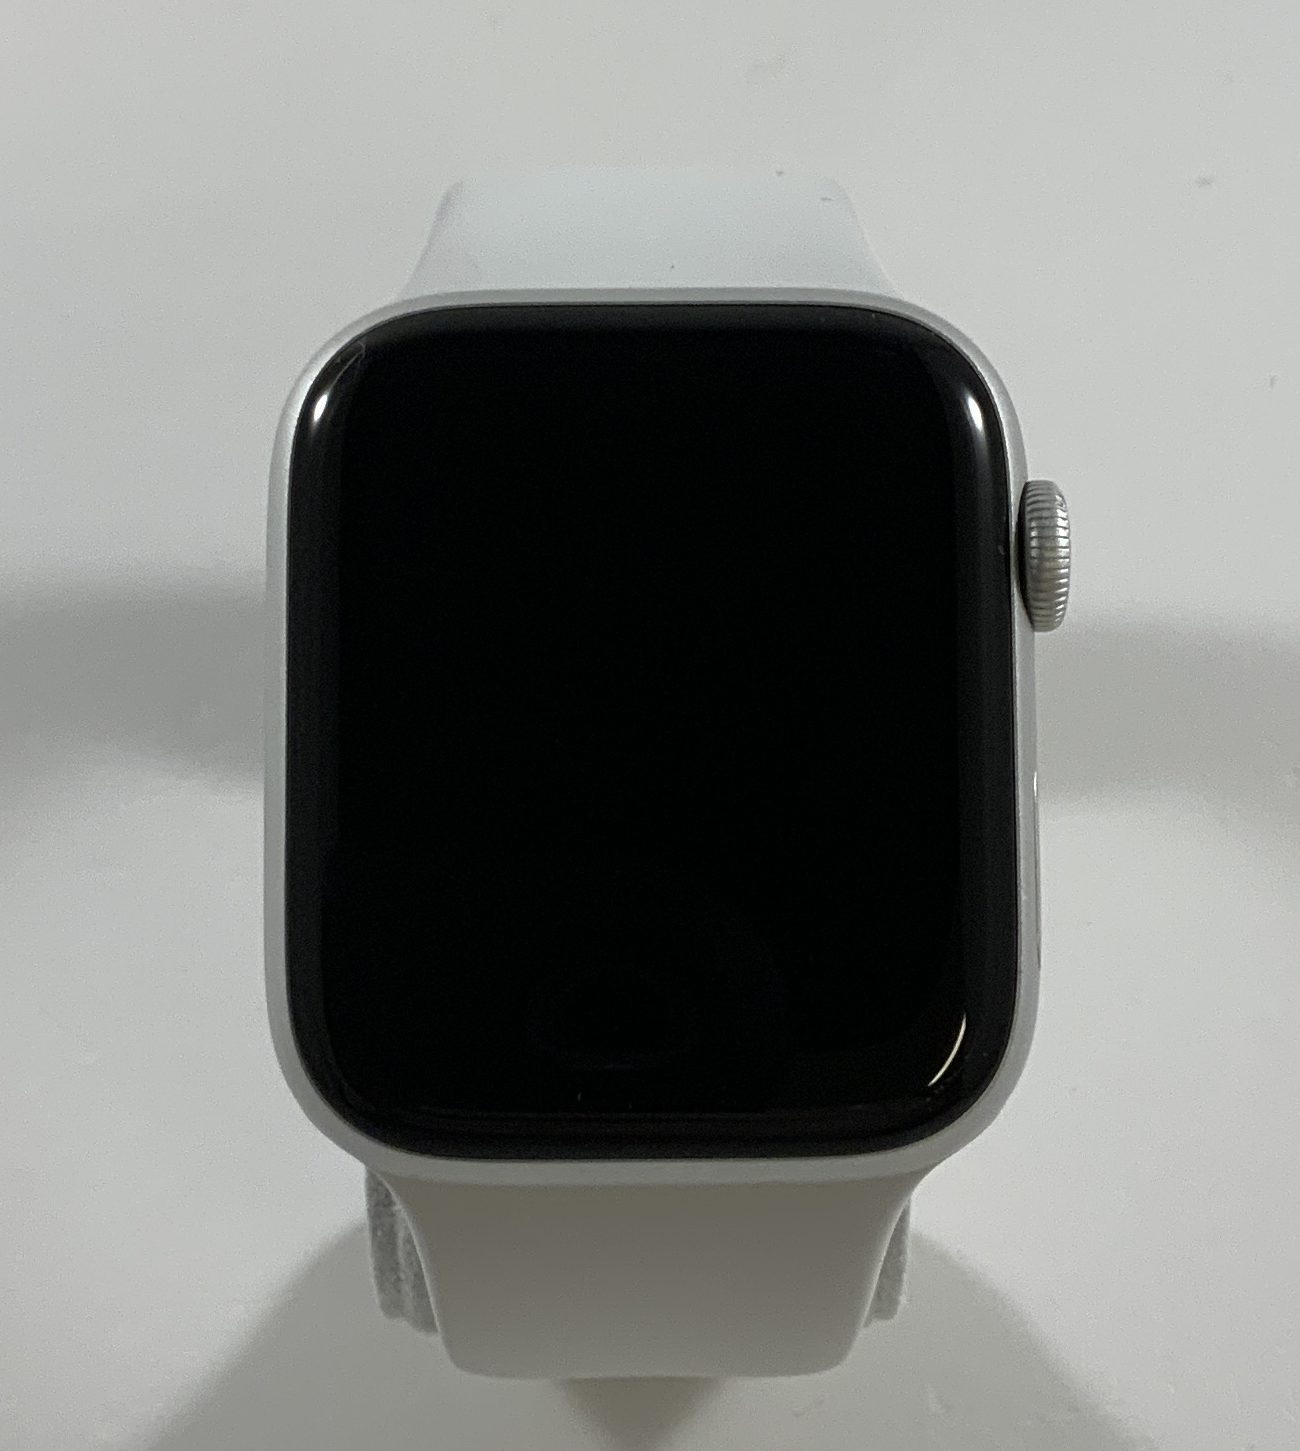 Watch Series 5 Aluminum Cellular (44mm), Silver, image 2